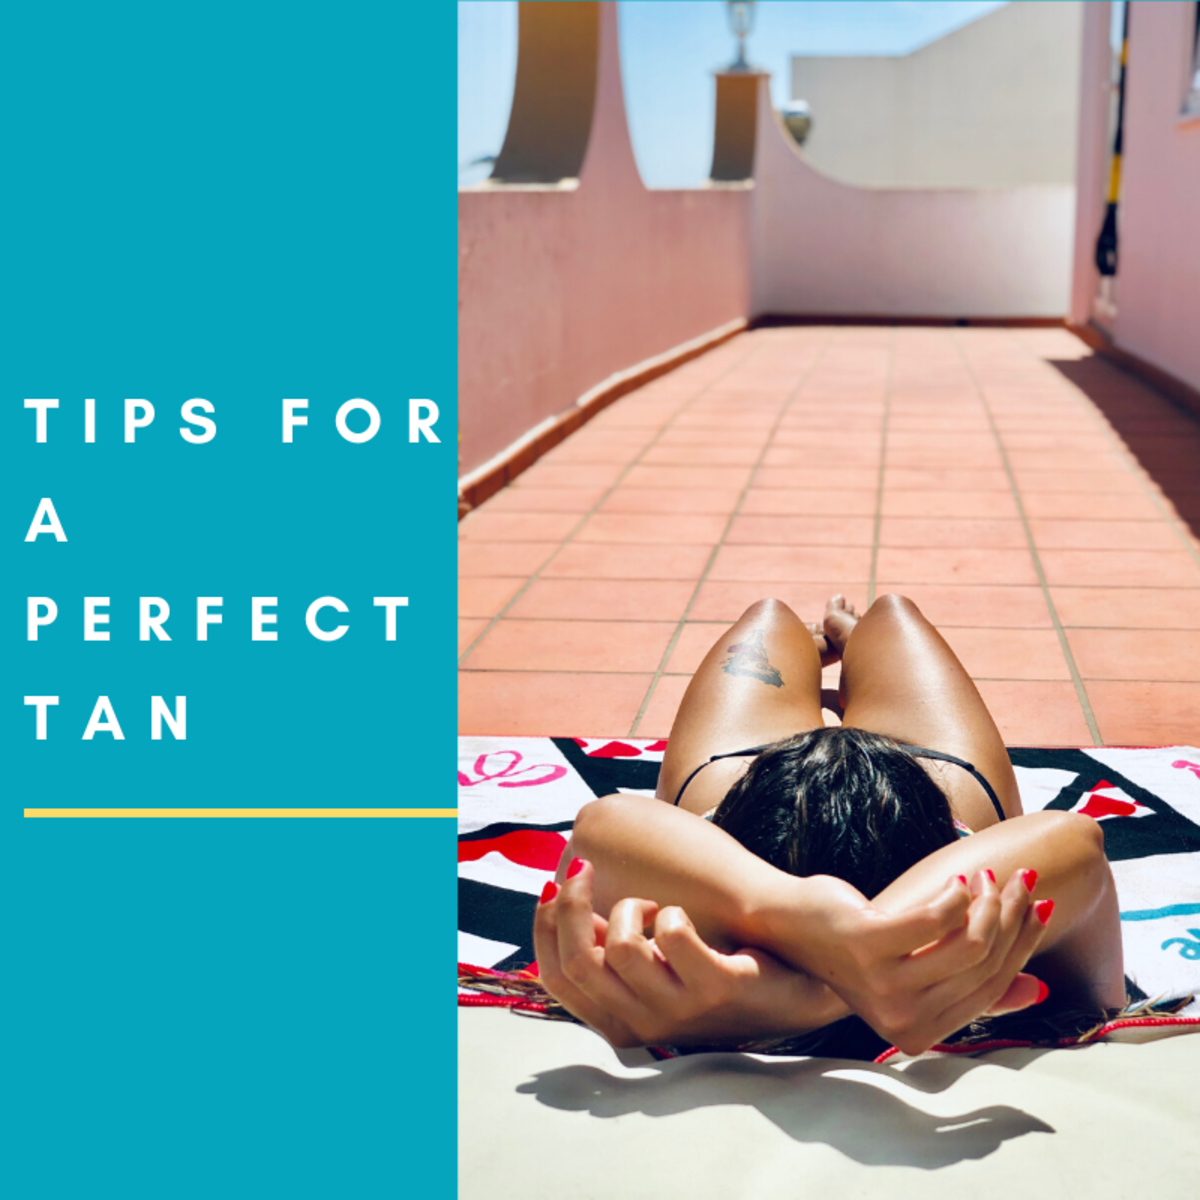 These tips will help you achieve the perfect tan—even if you're fair-skinned